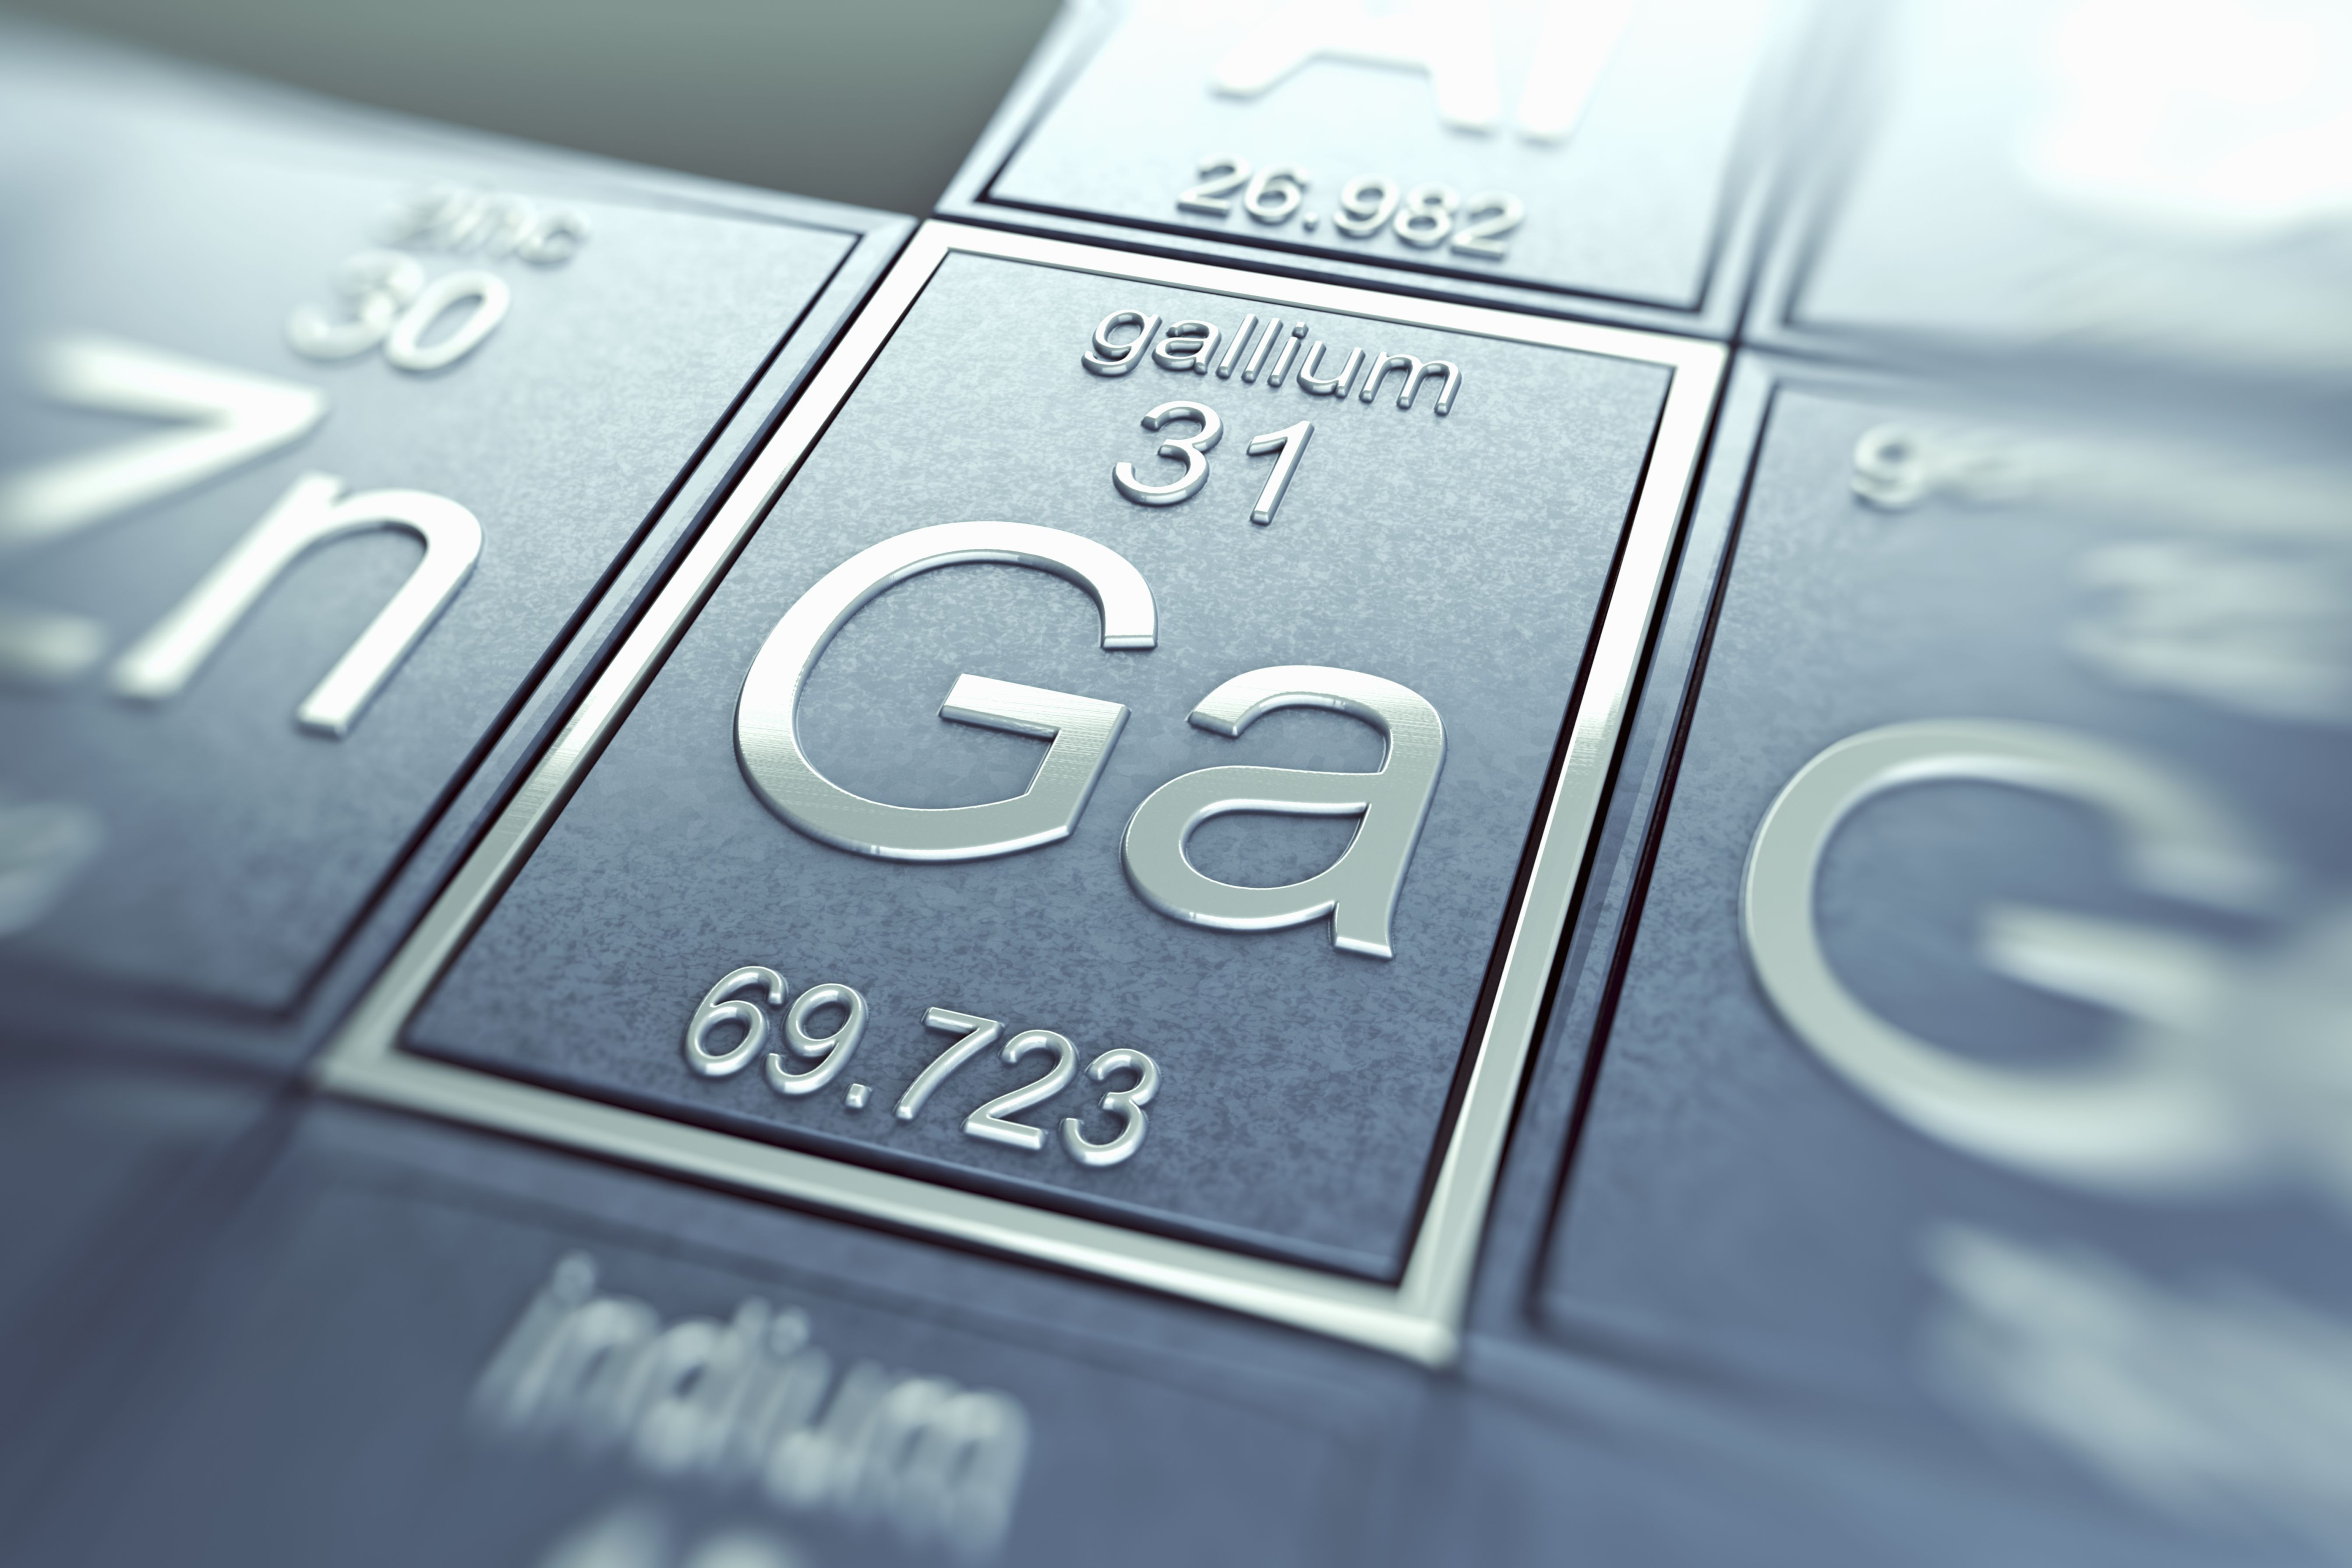 Gallium is an example of a semimetal.